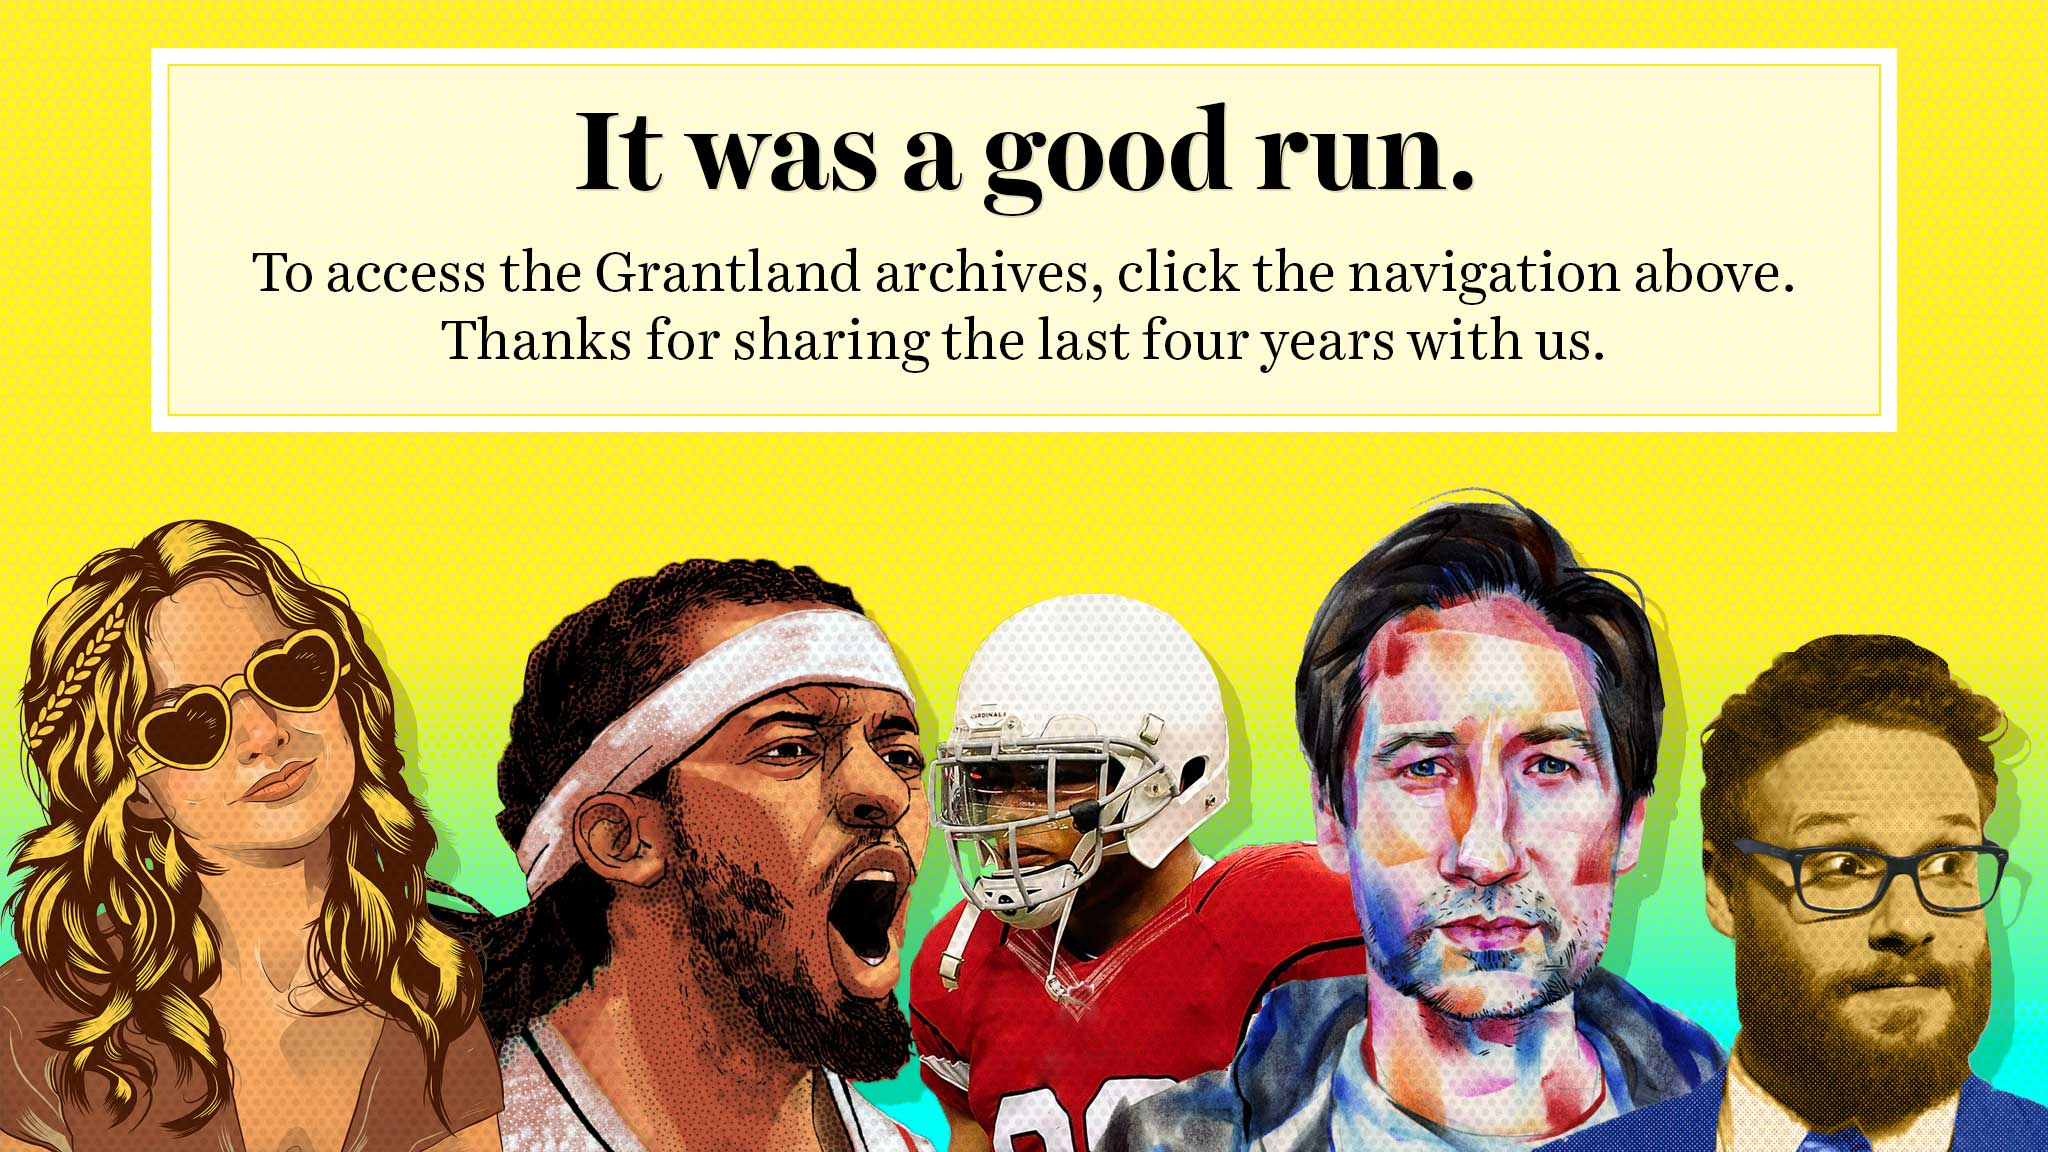 It was a good run. To access the Grantland archives, click the navigation above. Thanks for sharing the last four years with us.